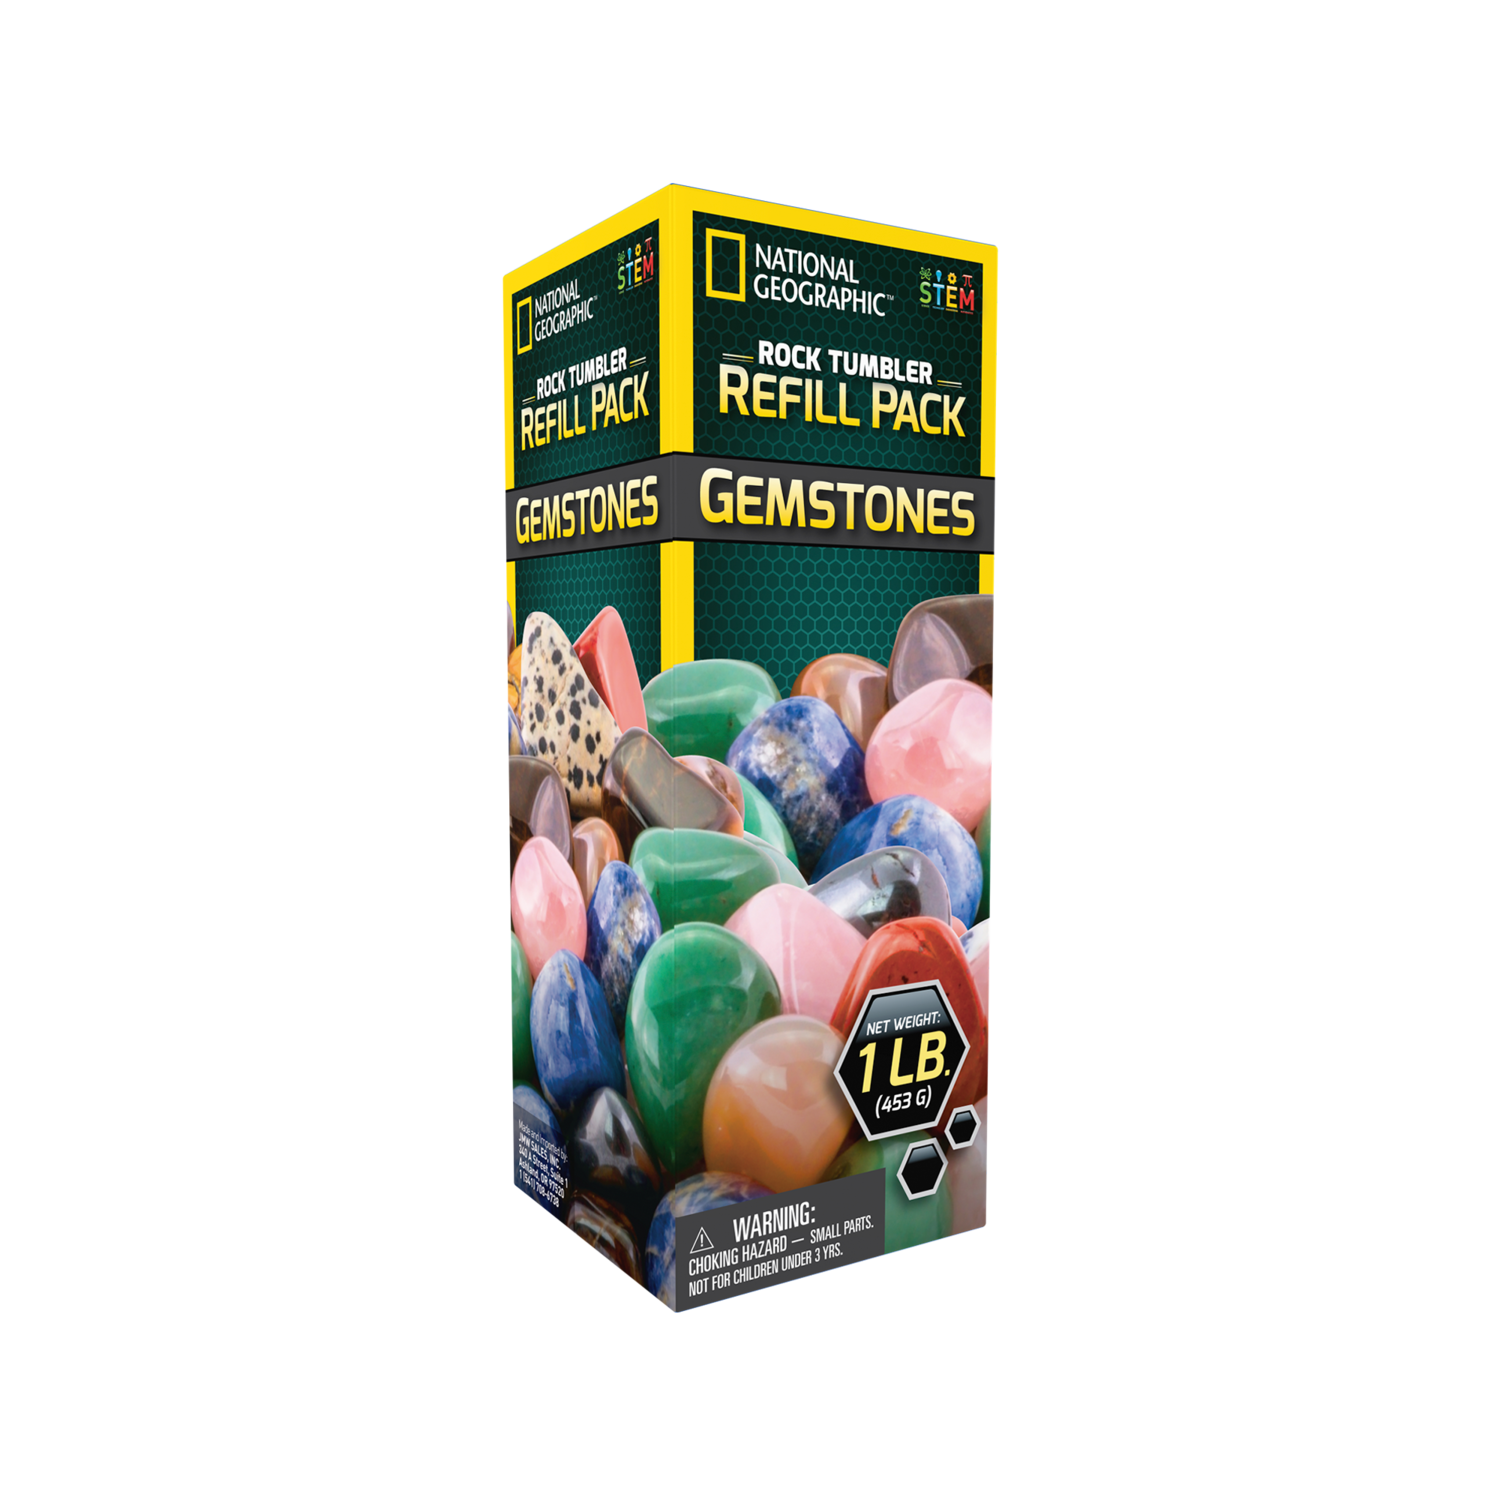 Shop STEM Toys Now | Geodes, Chemistry Kits, & More